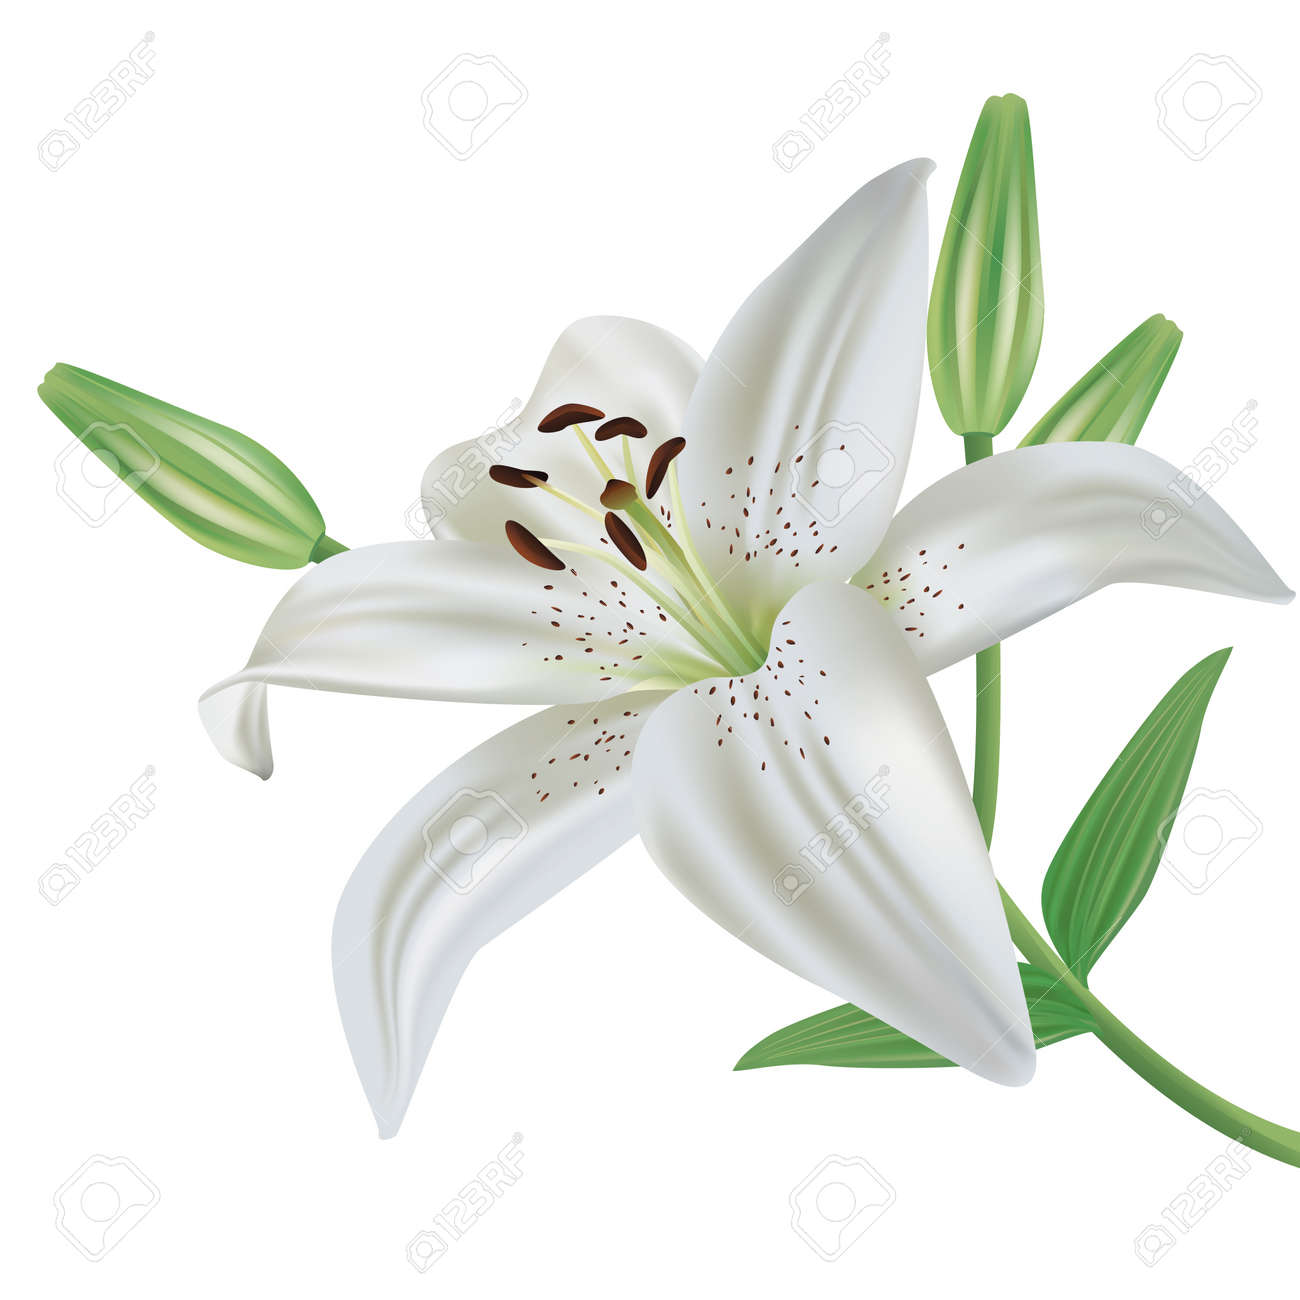 38894 Lily Flower Cliparts Stock Vector And Royalty Free Lily